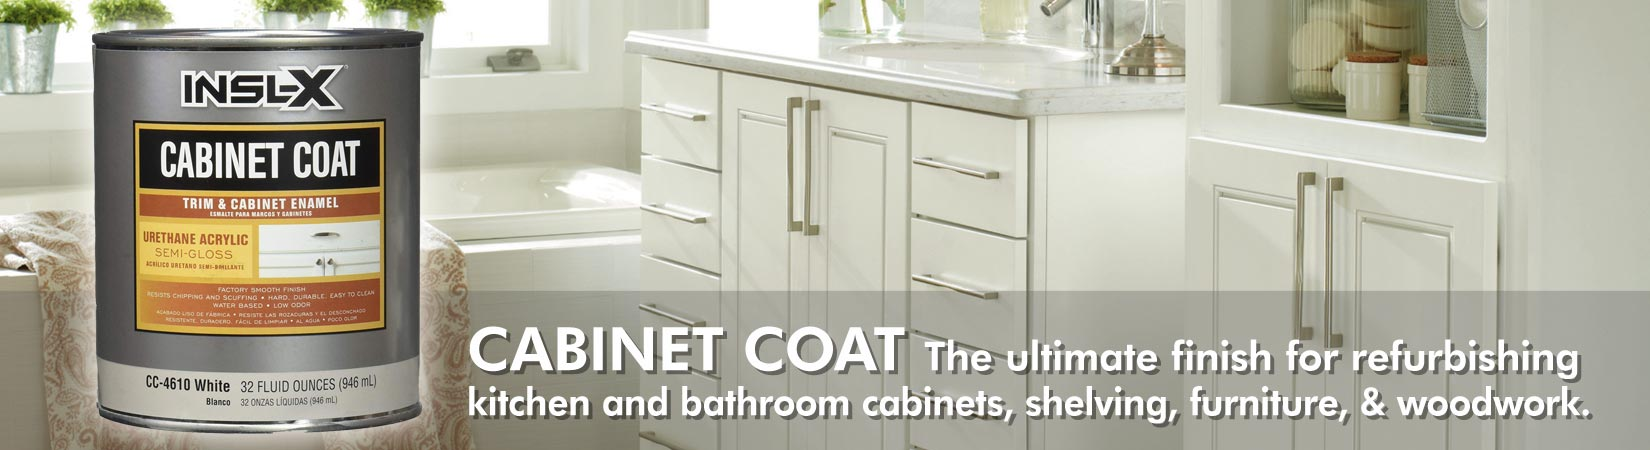 Cabinet Coat by INSL-X